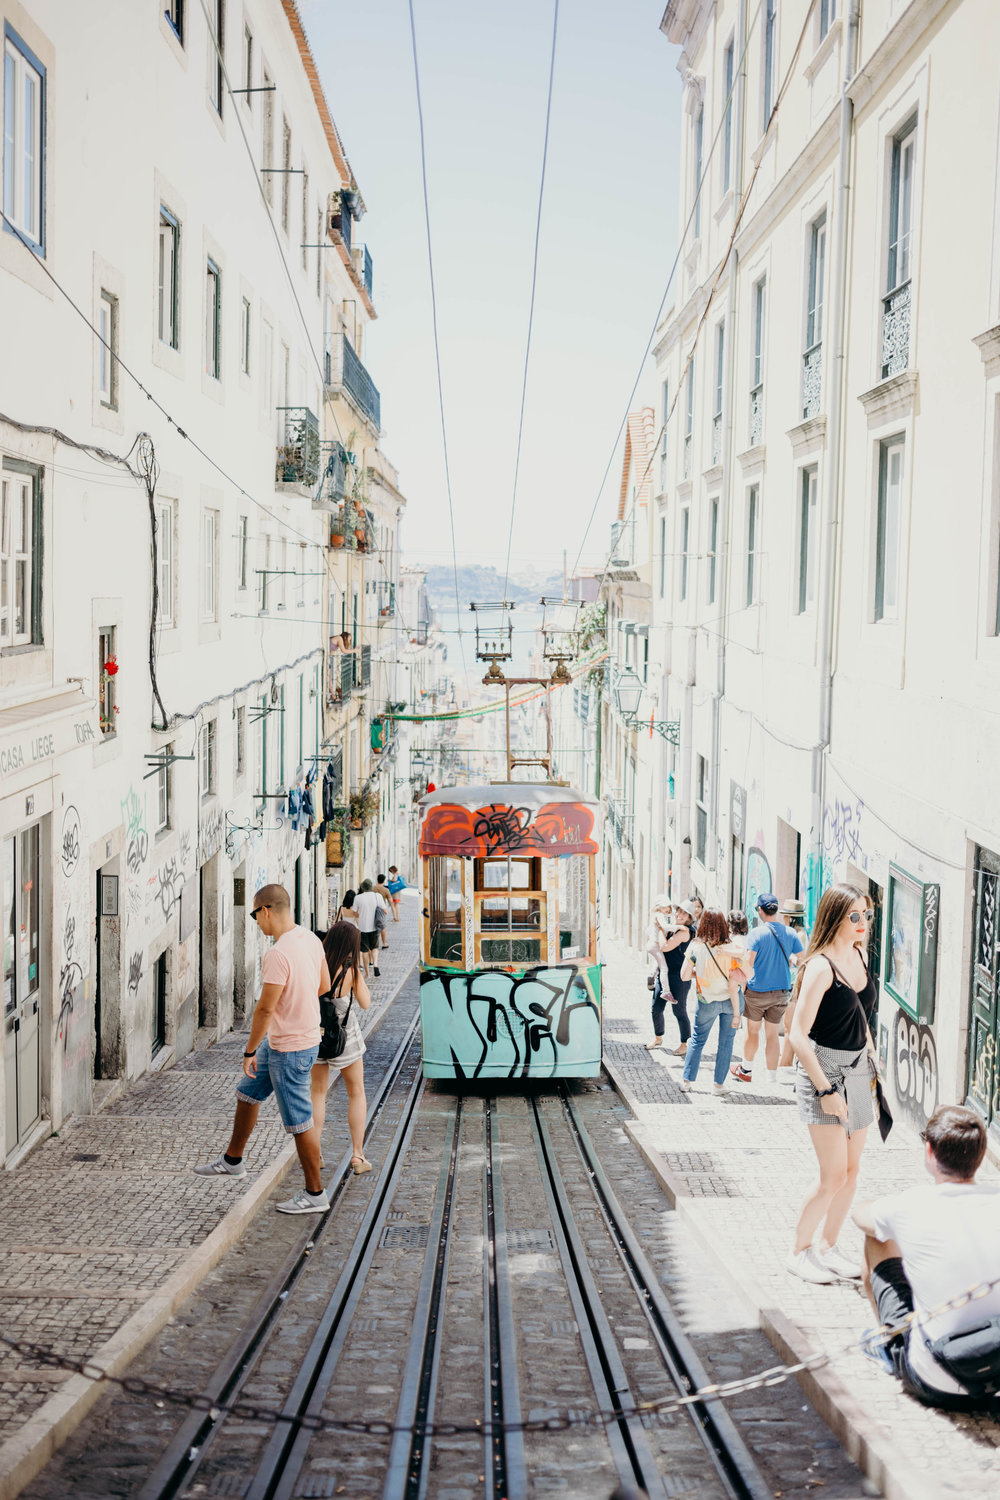 Our Portugal Travel Diary: Lisbon, Porto, and More | On the Street Where We Live (aretherelilactrees.com)  Lisbon tram, Baixa, Chiado